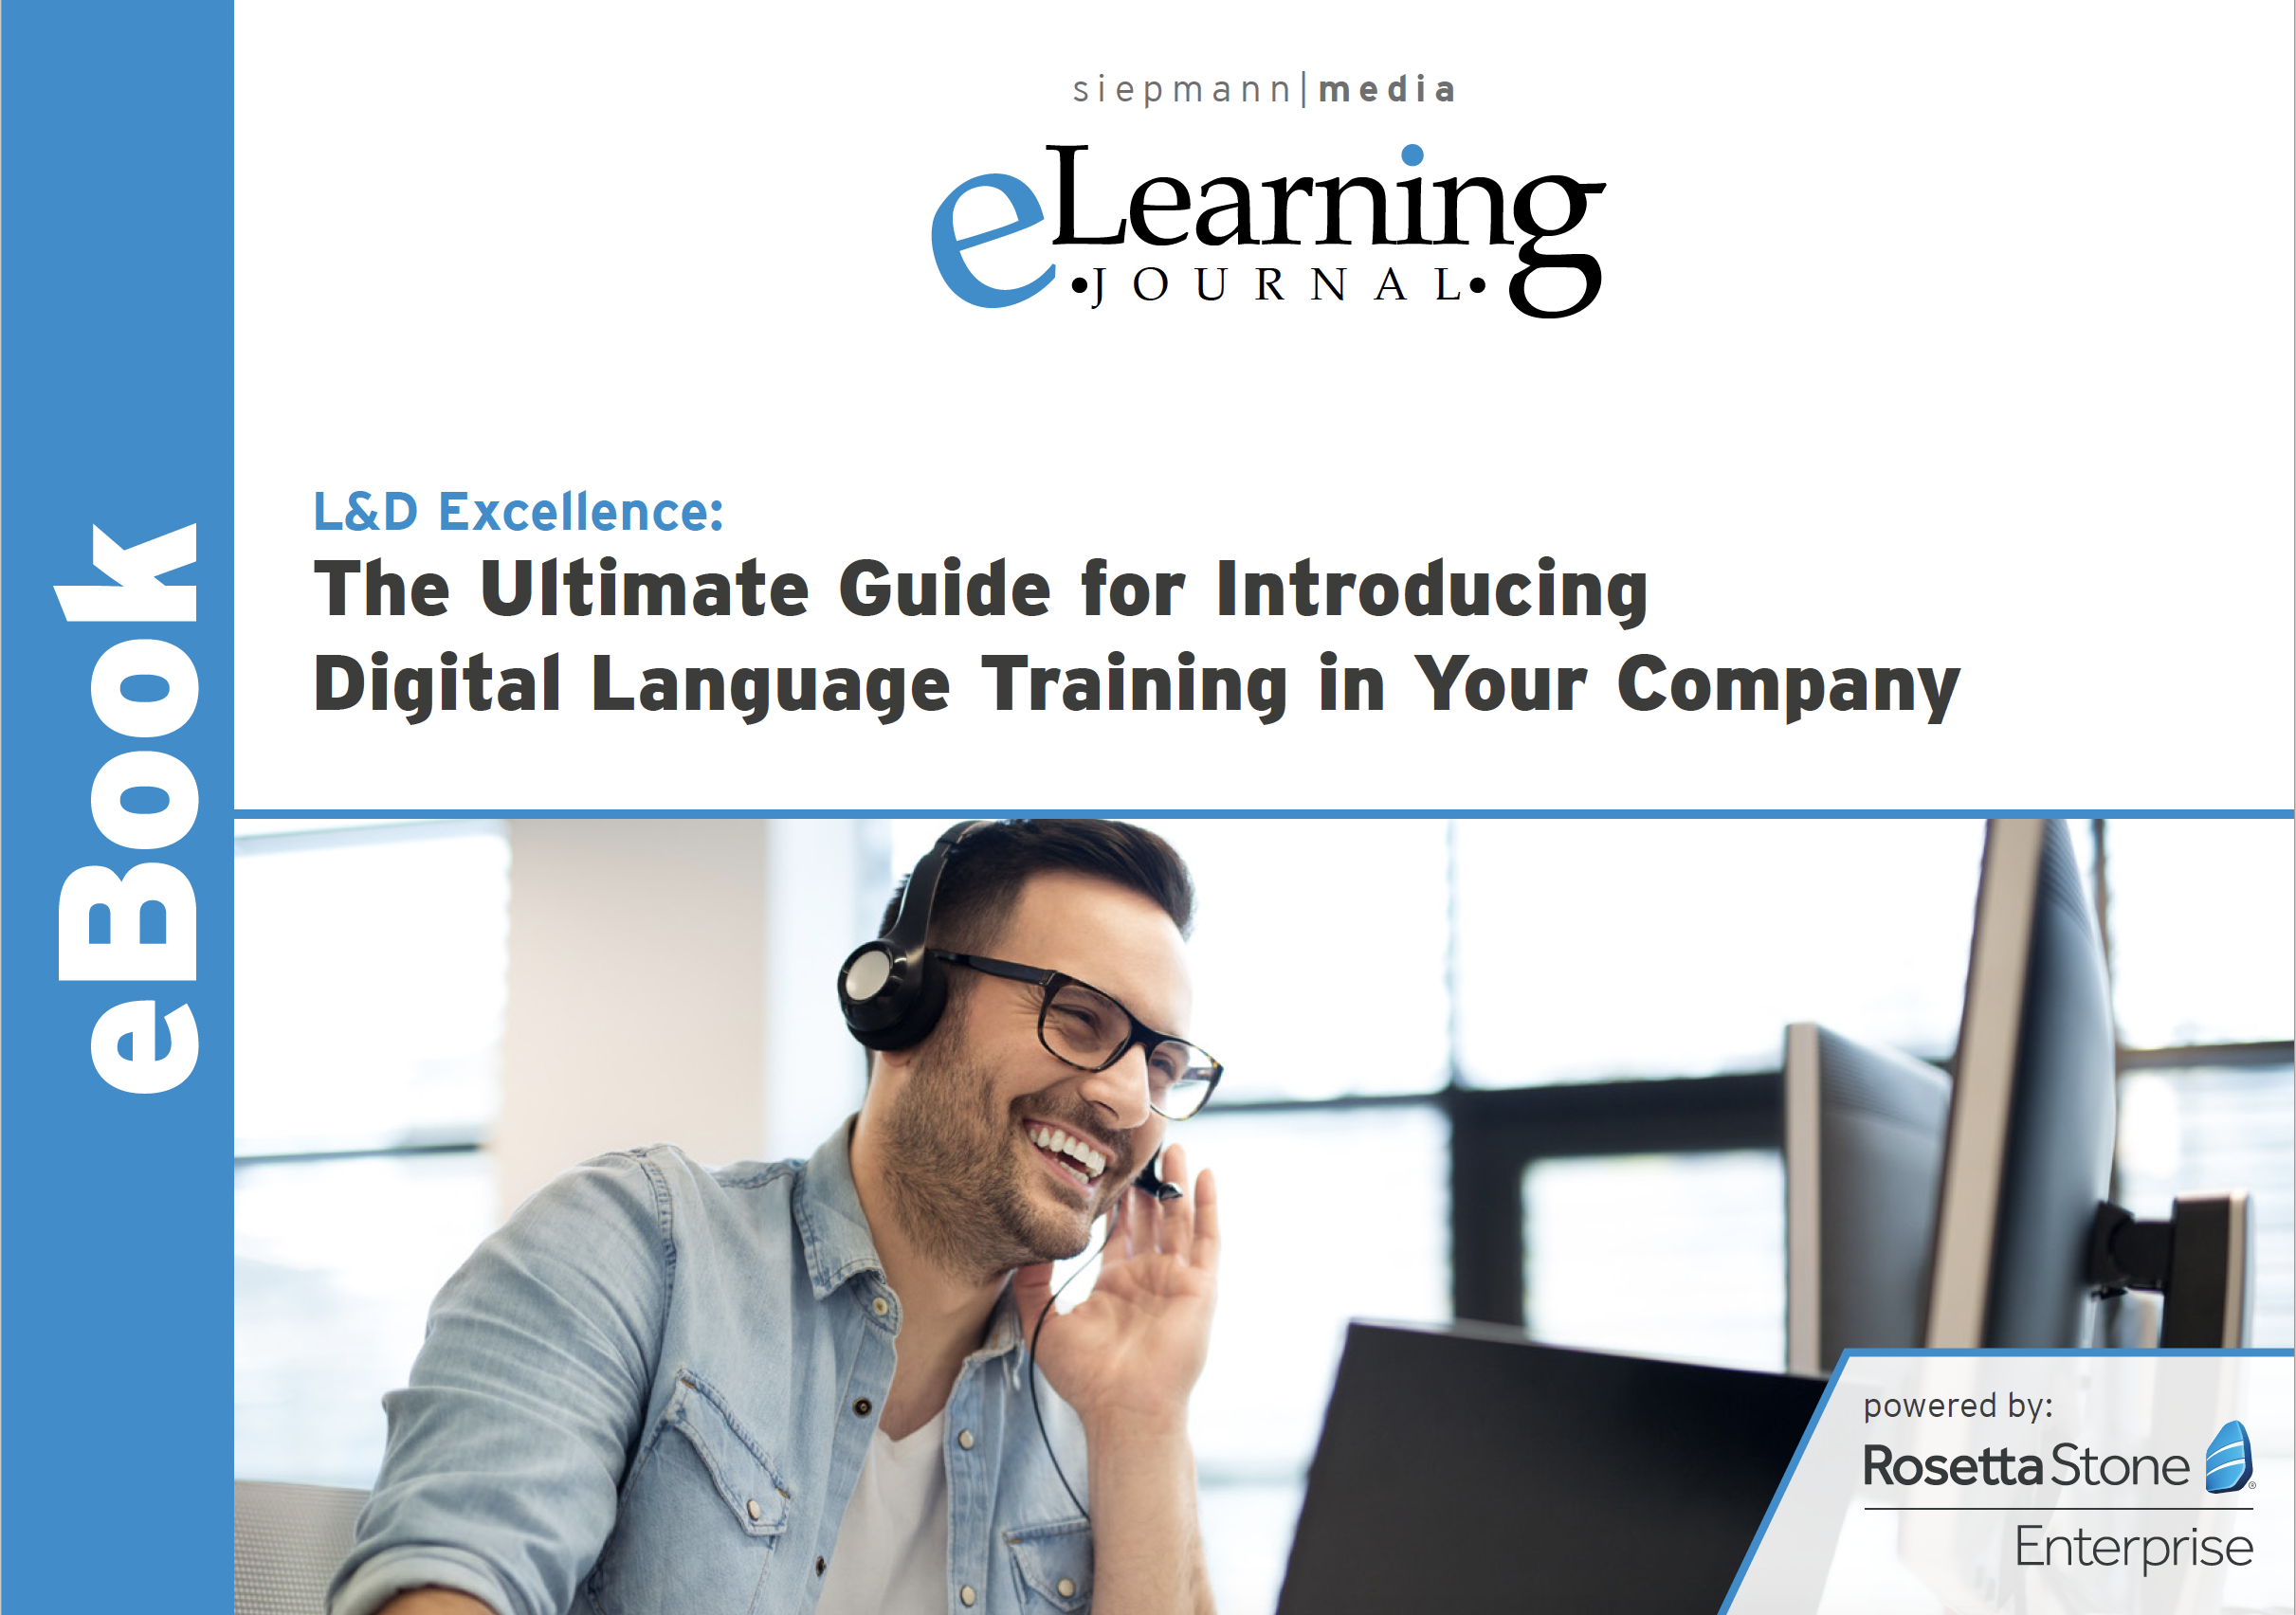 The Ultimate Guide for Introducing Digital Language Training in Your Company